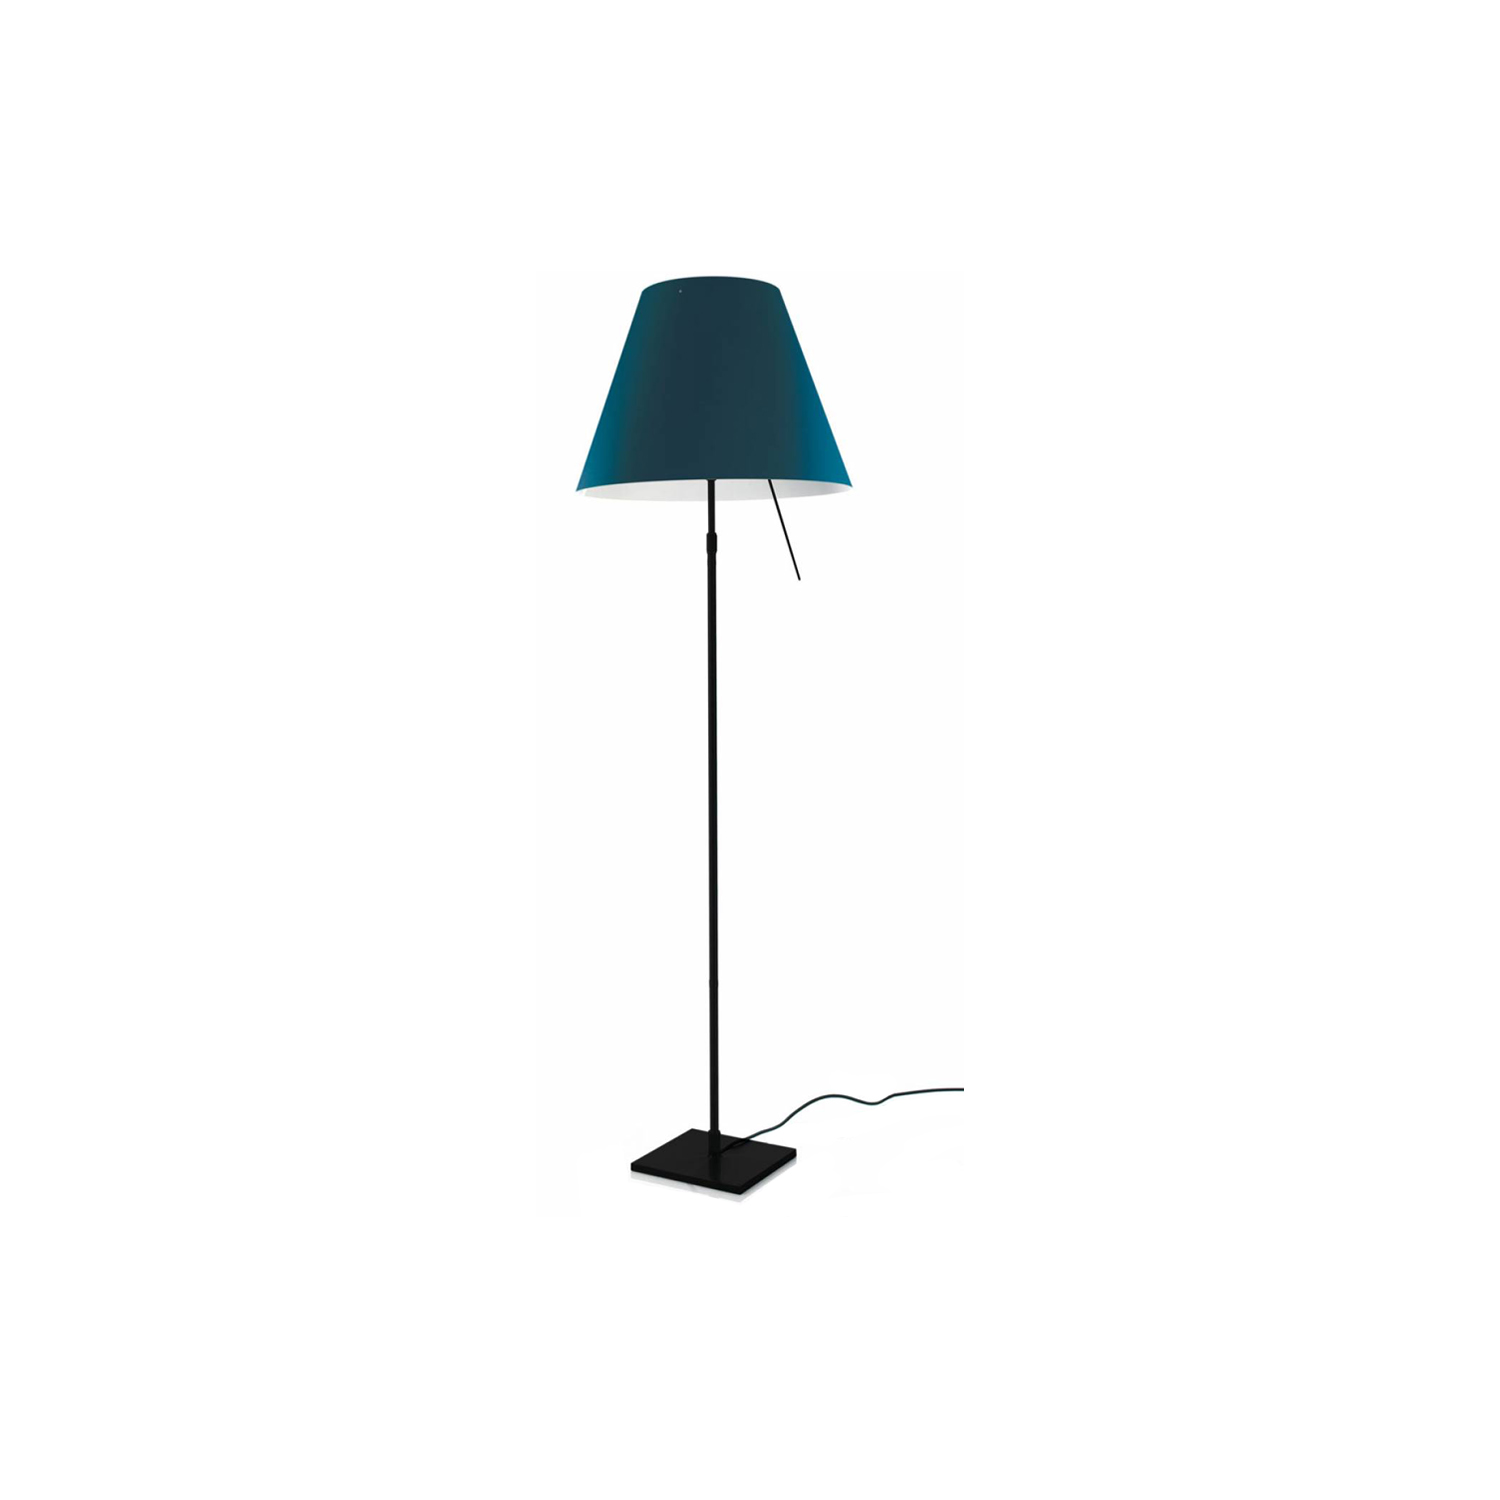 Costanza Floor Lamp - Ethereal and essential, this lamp fits into any setting with nonchalance. Costanza is an archetypal example of modern elegance. The polycarbonate shade rests on the aluminium structure at just two points.  LED technology has made it possible to update Costanza while keeping its inimitable characteristics: high performance in terms of diffuse lighting and visual comfort  Shades come in different finishes, please enquire for more information | Matter of Stuff